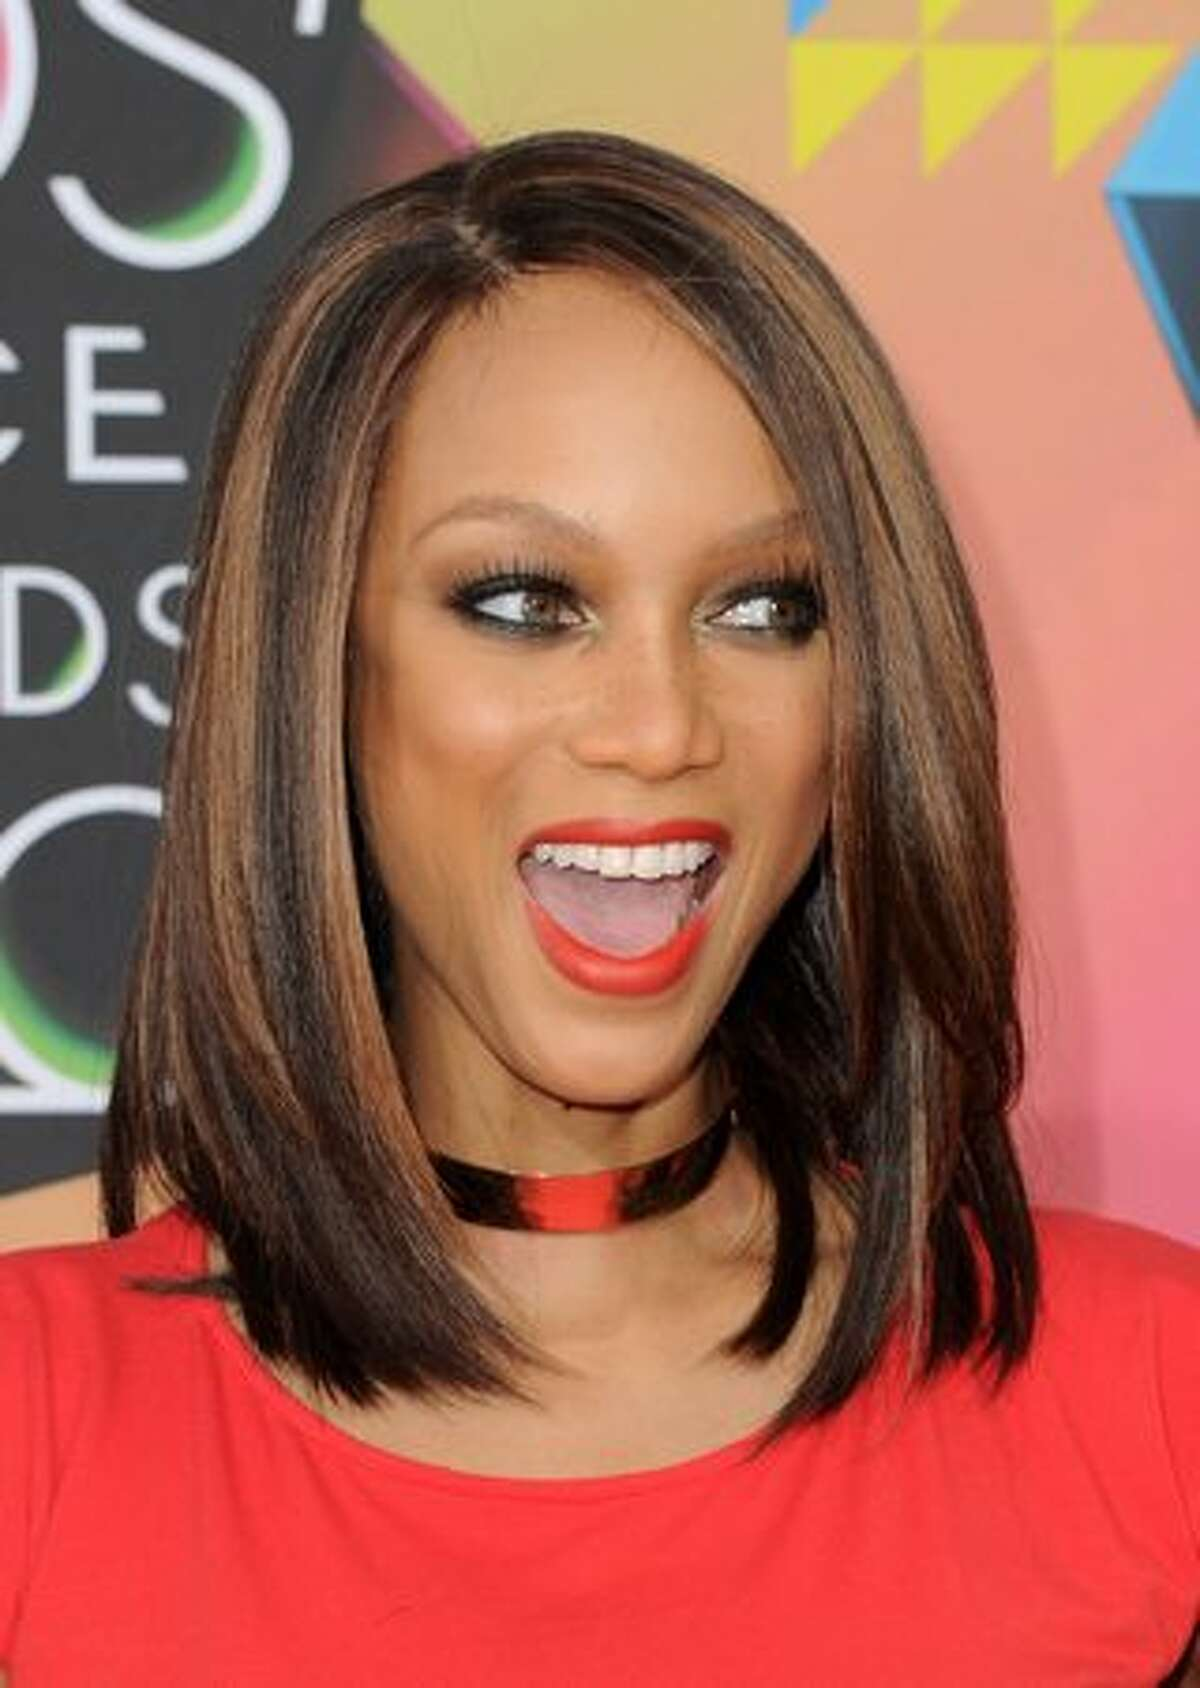 Model Tyra Banks arrives at Nickelodeon's 23rd Annual Kids' Choice Awards.